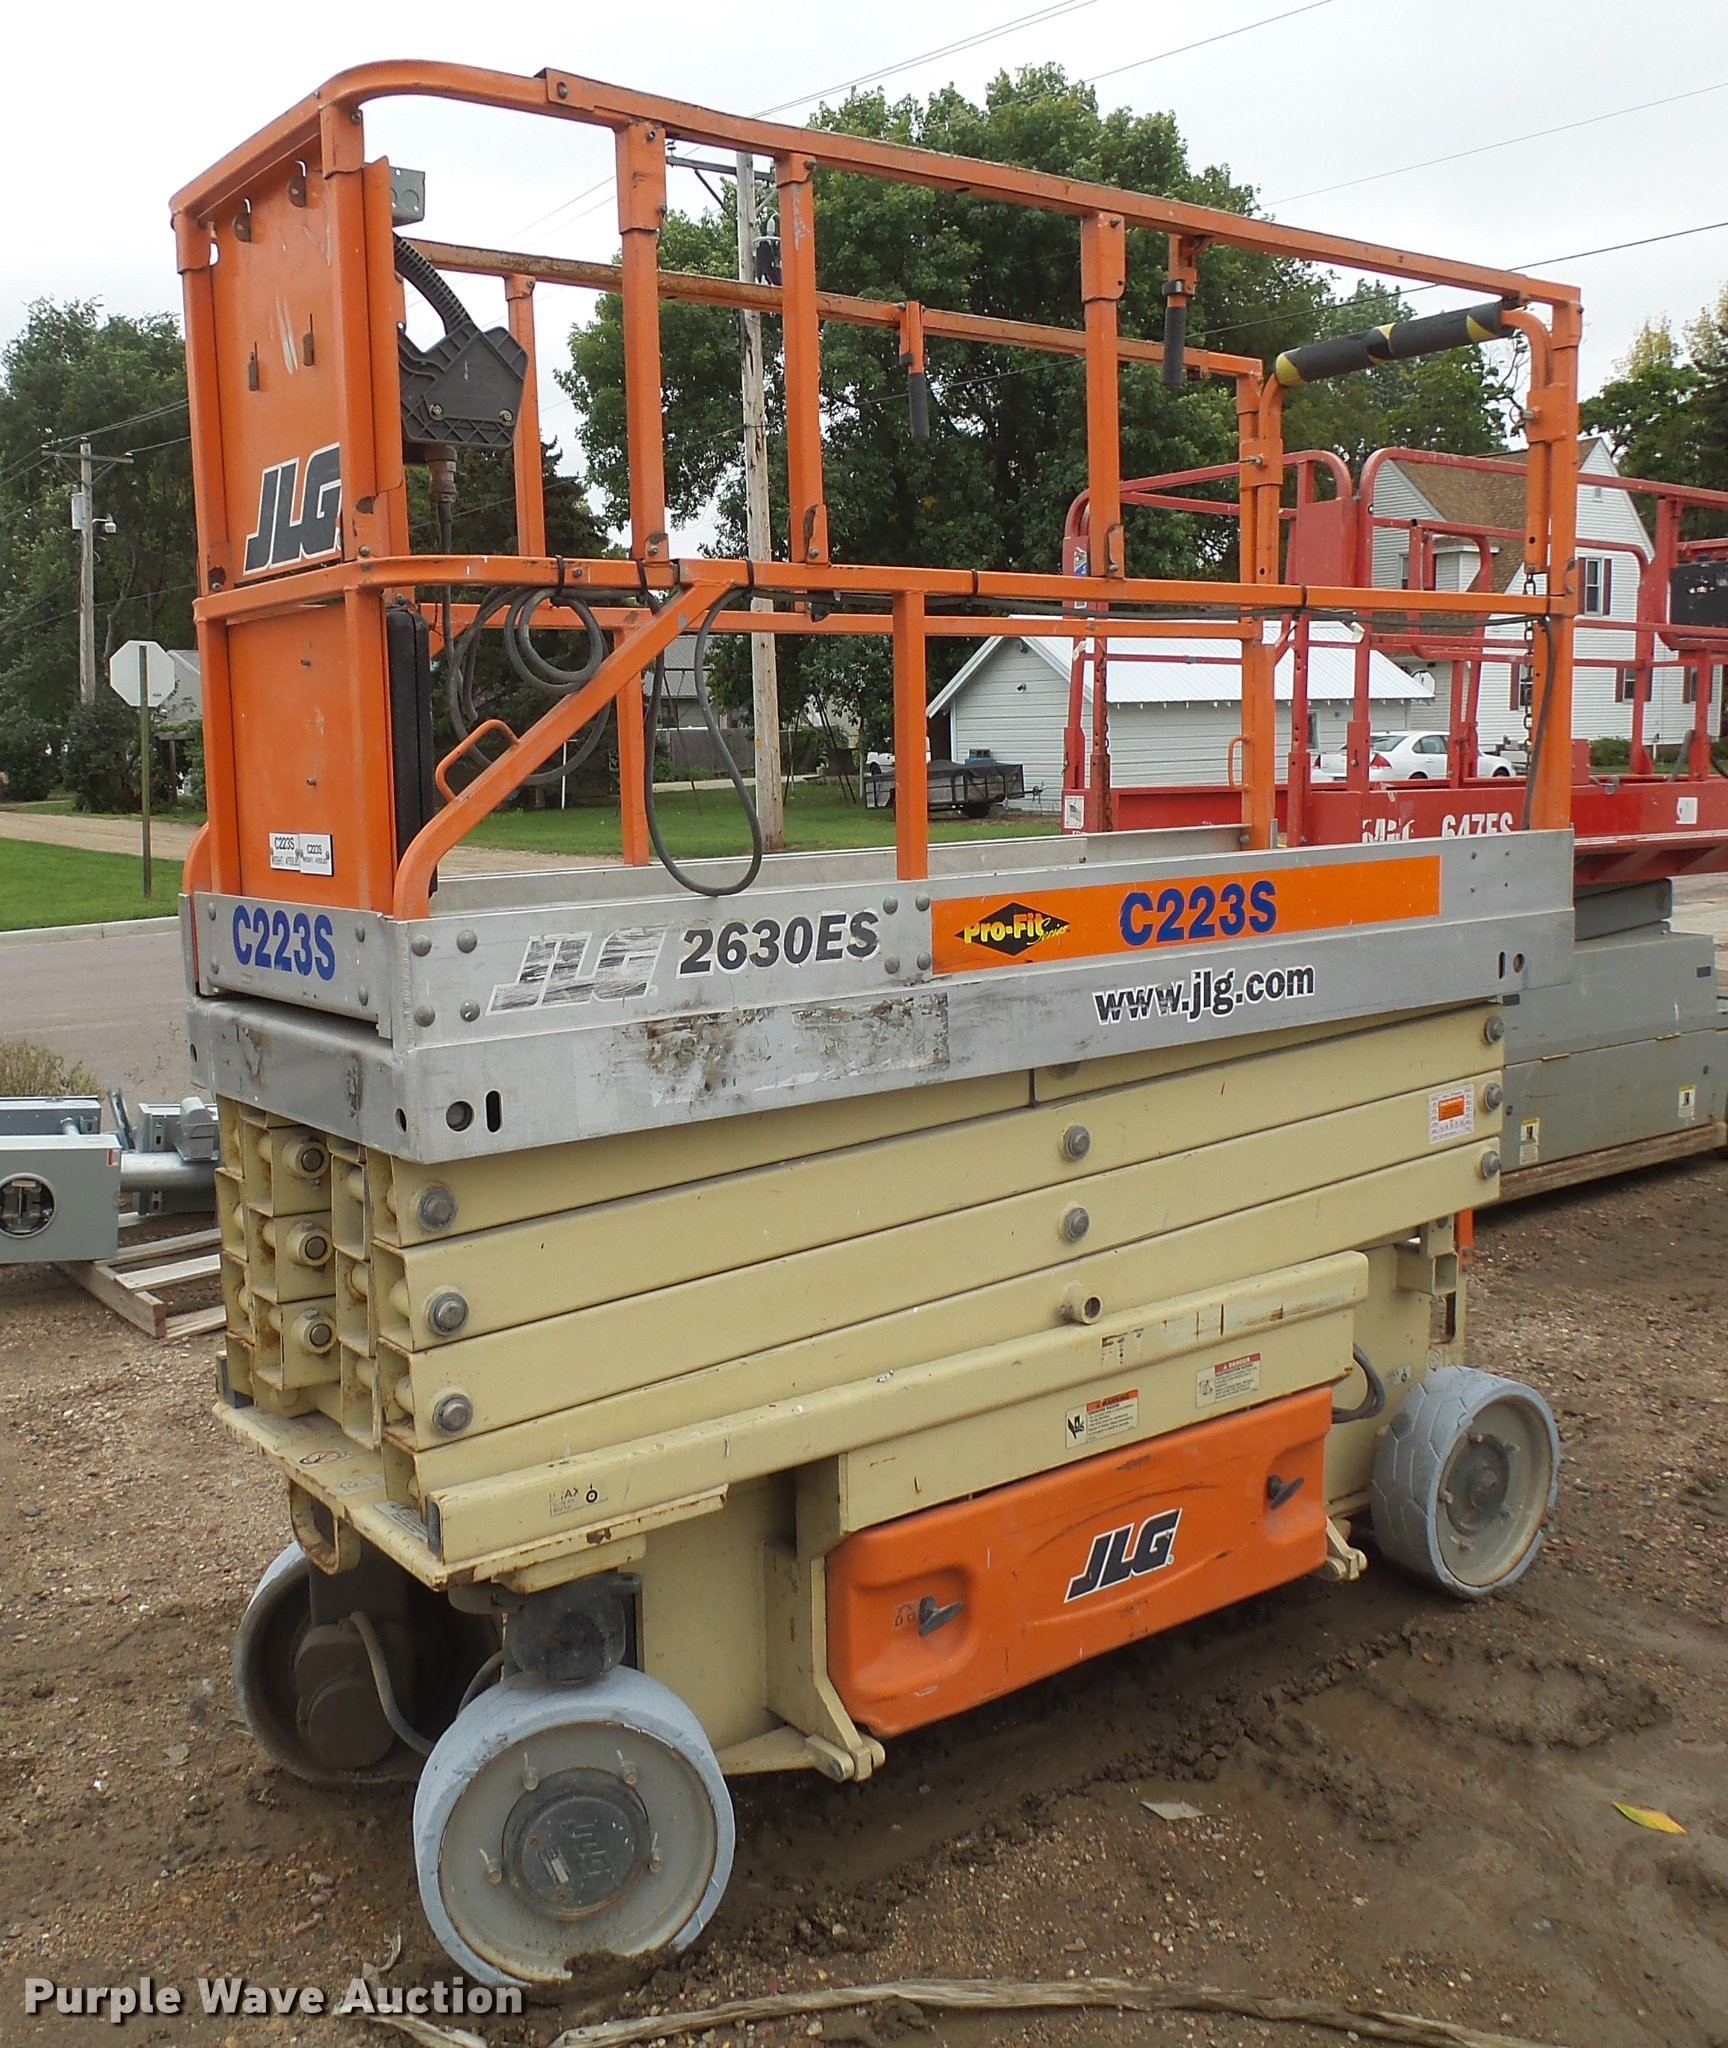 hight resolution of 2005 jlg 2630es scissor lift for sale in south dakota